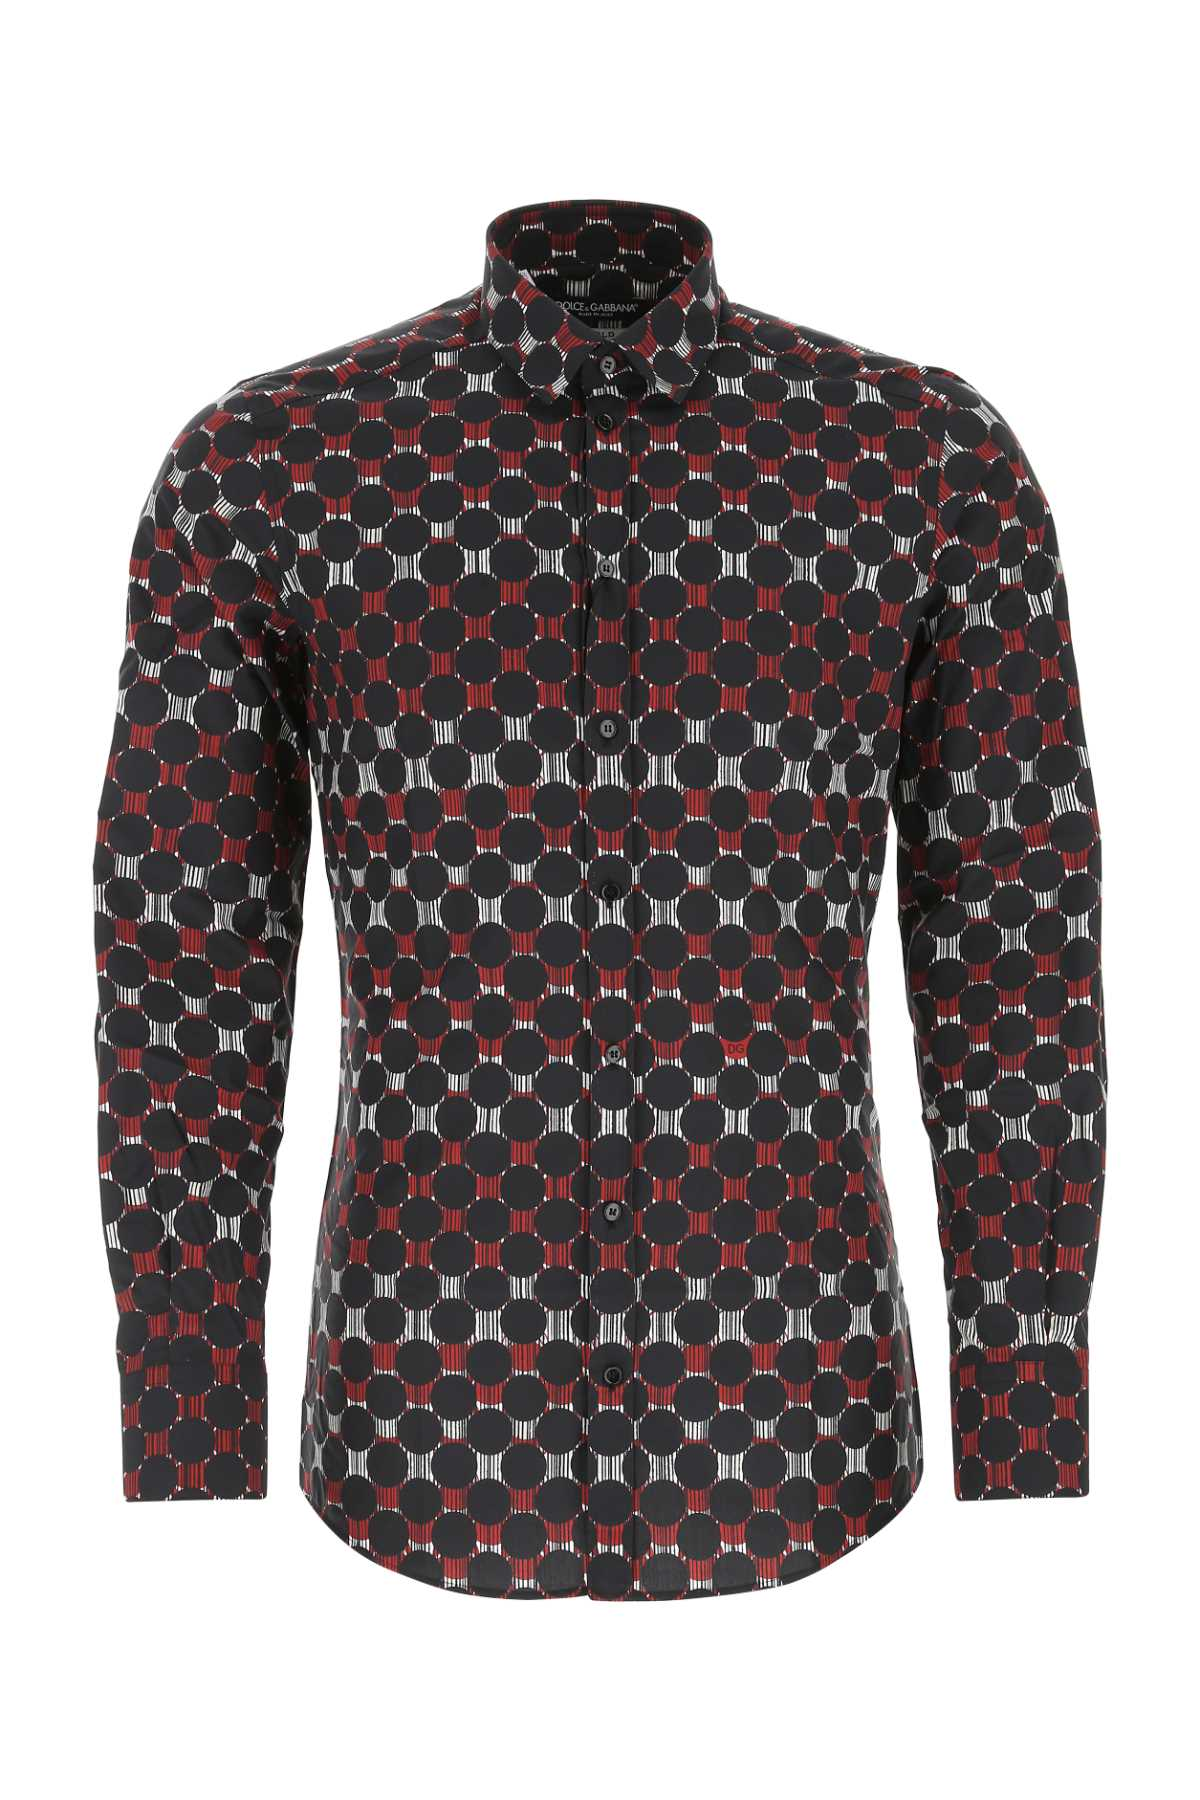 Dolce & Gabbana Cottons DOLCE & GABBANA PRINTED FITTED SHIRT